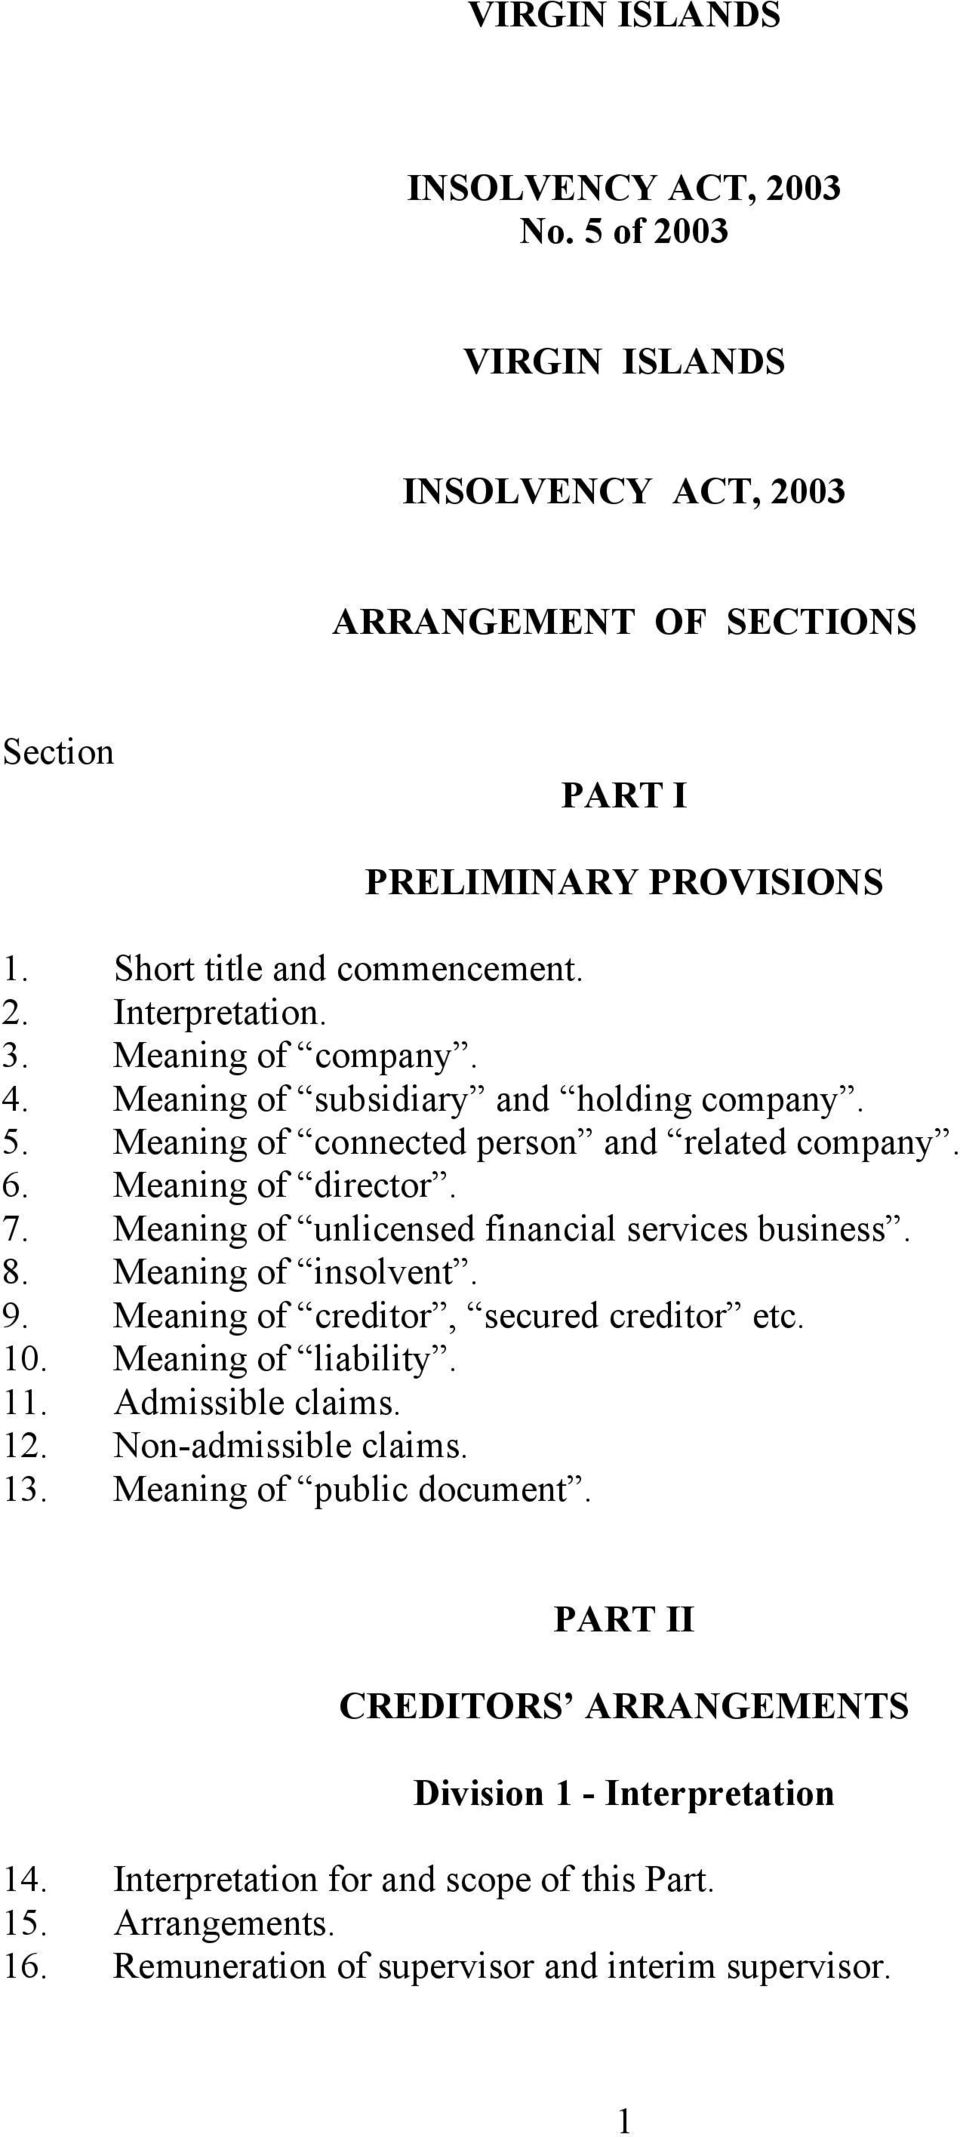 Meaning of unlicensed financial services business. 8. Meaning of insolvent. 9. Meaning of creditor, secured creditor etc. 10. Meaning of liability. 11. Admissible claims. 12.